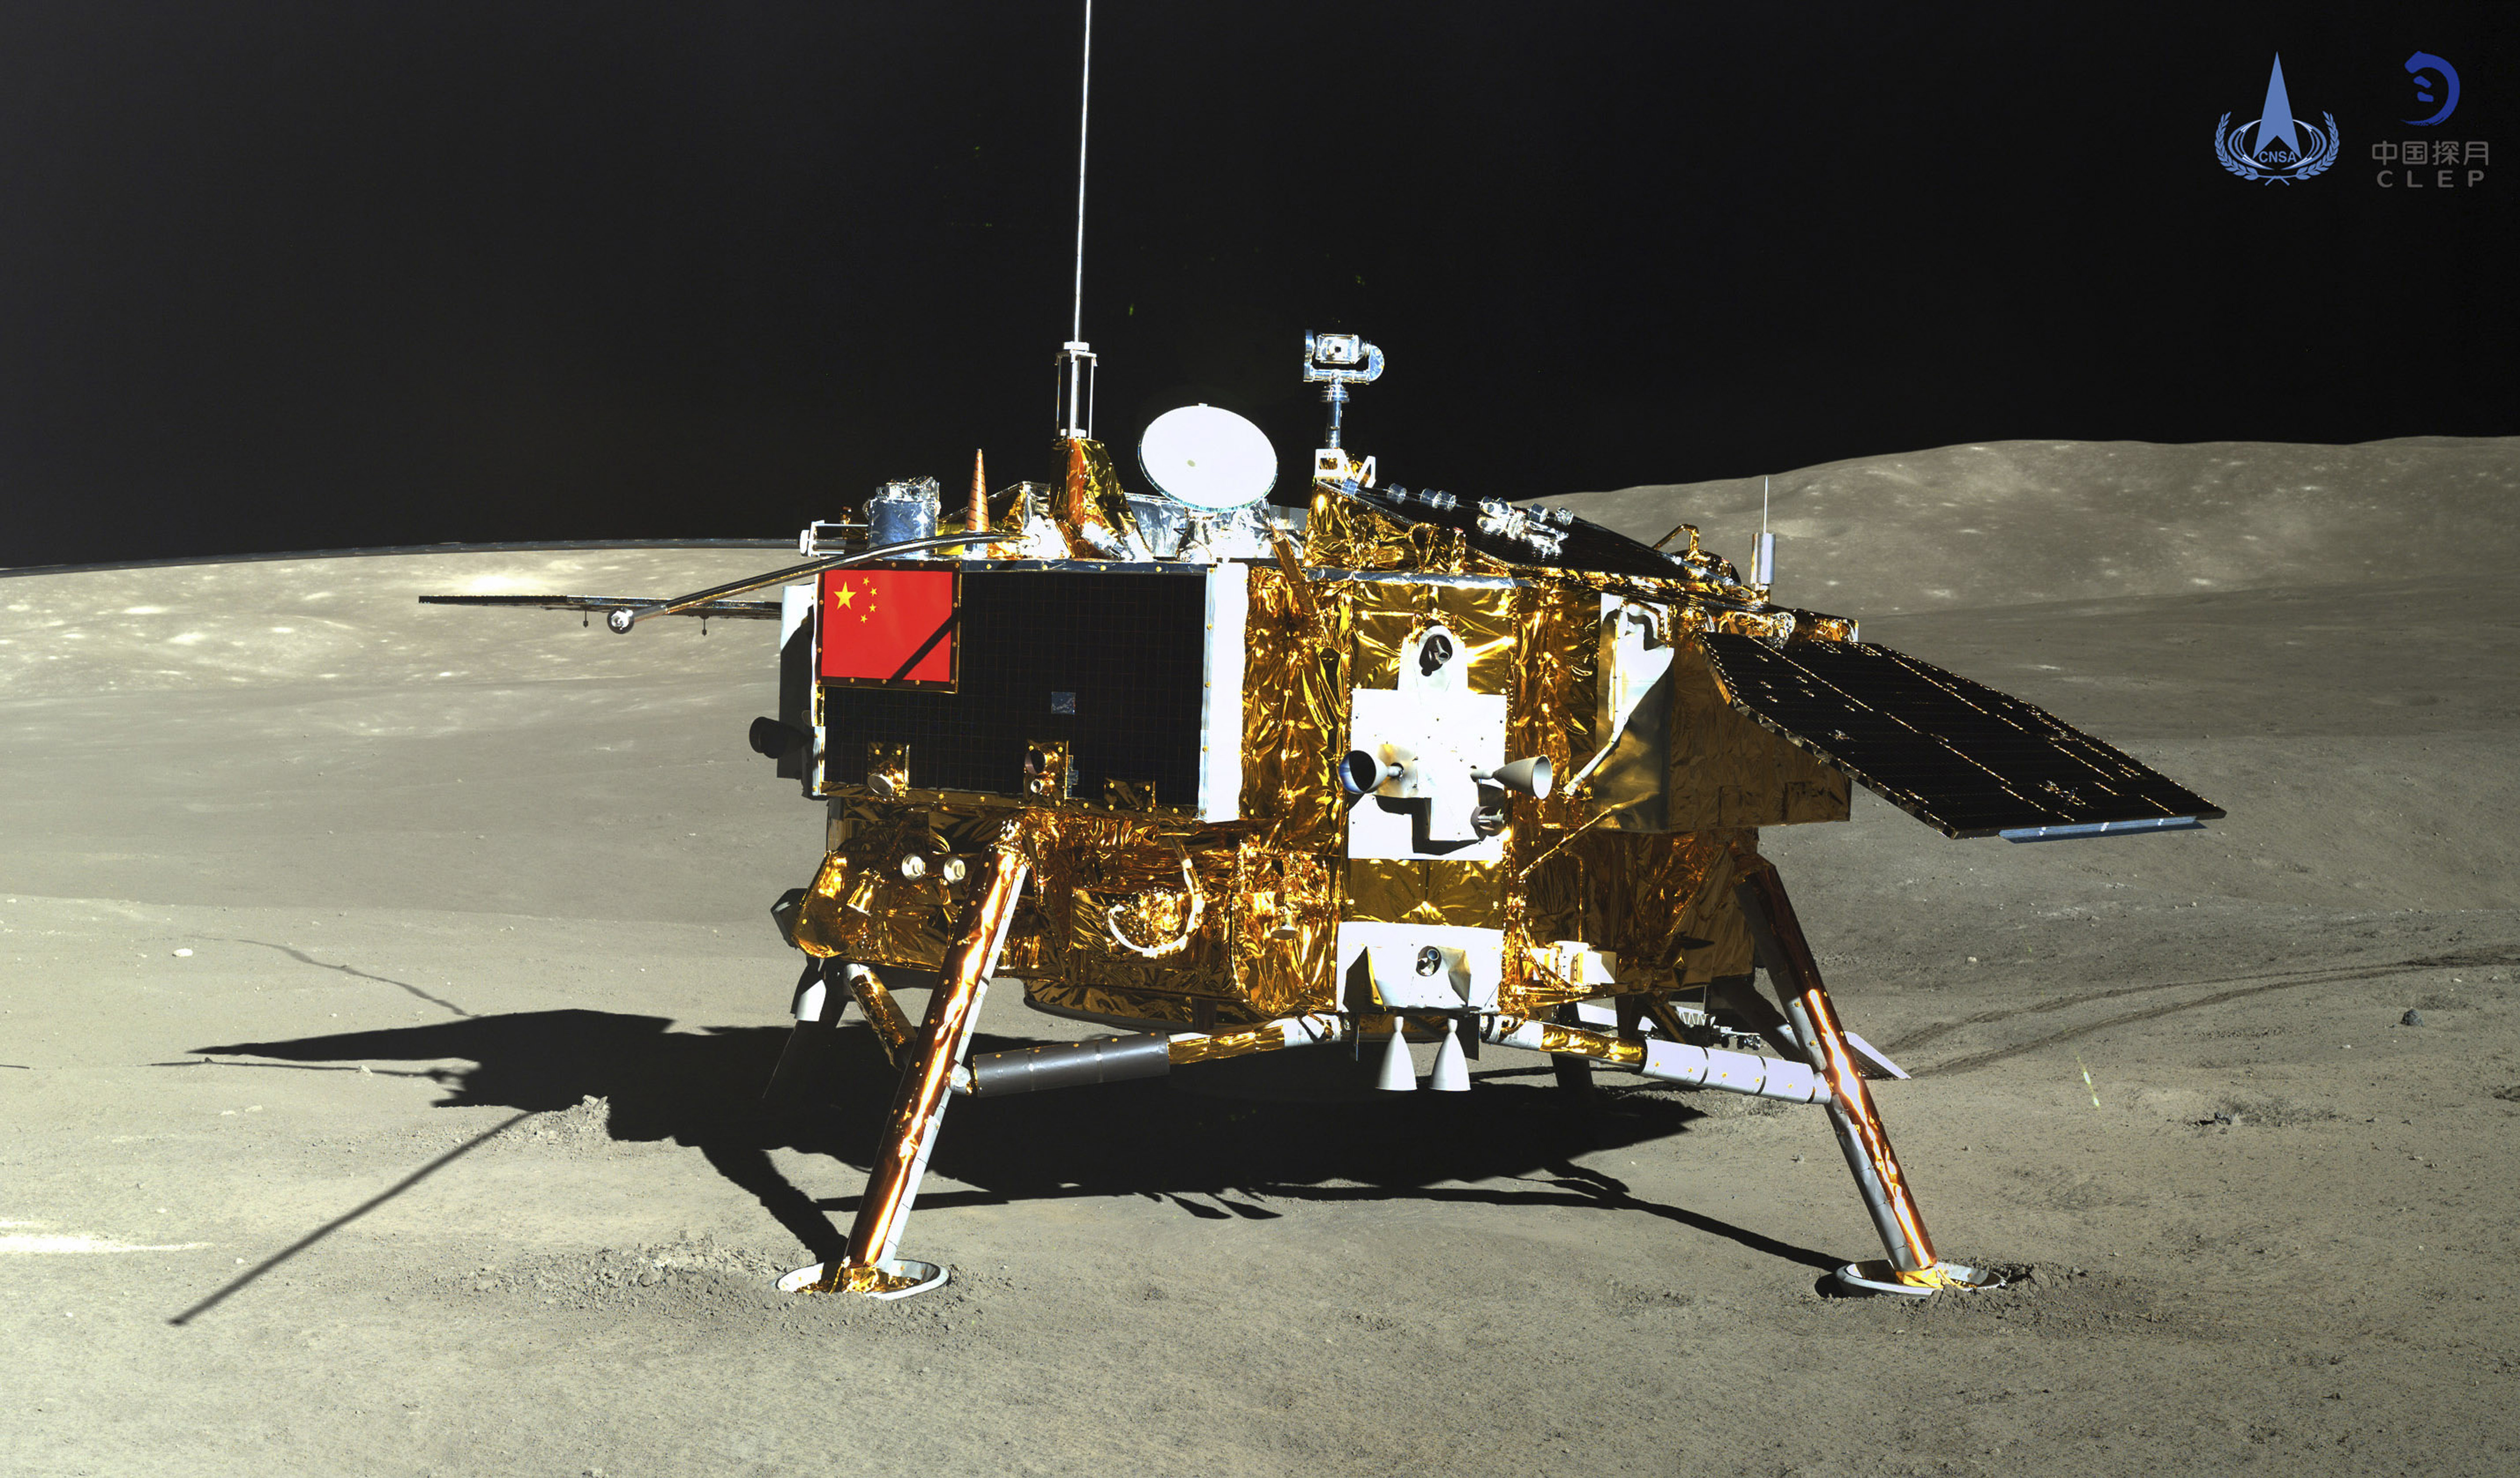 The lunar lander of the Chang'e-4 probe is seen in a photo taken by the rover Yutu-2